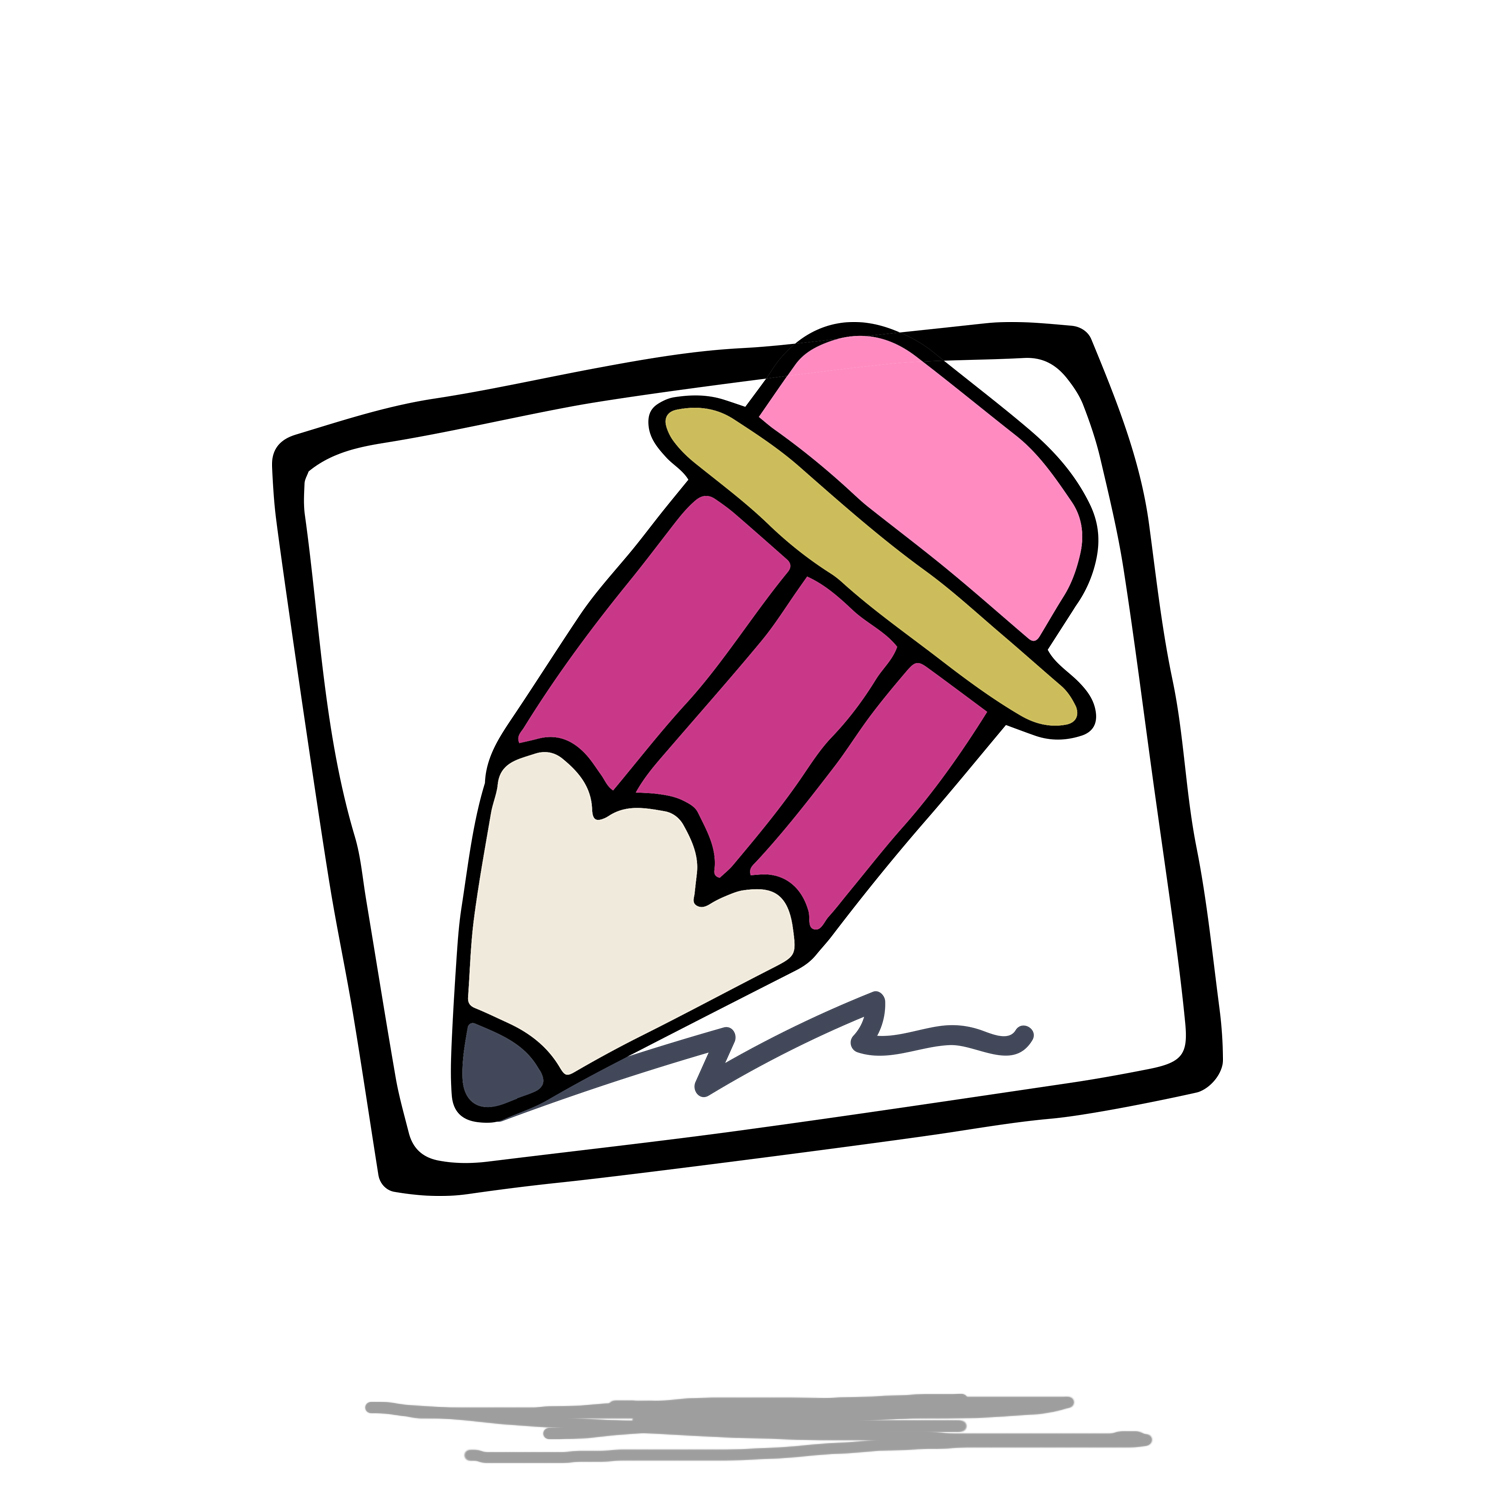 Handwriting Practice Guide - Practice sheets to help you improve your handwriting